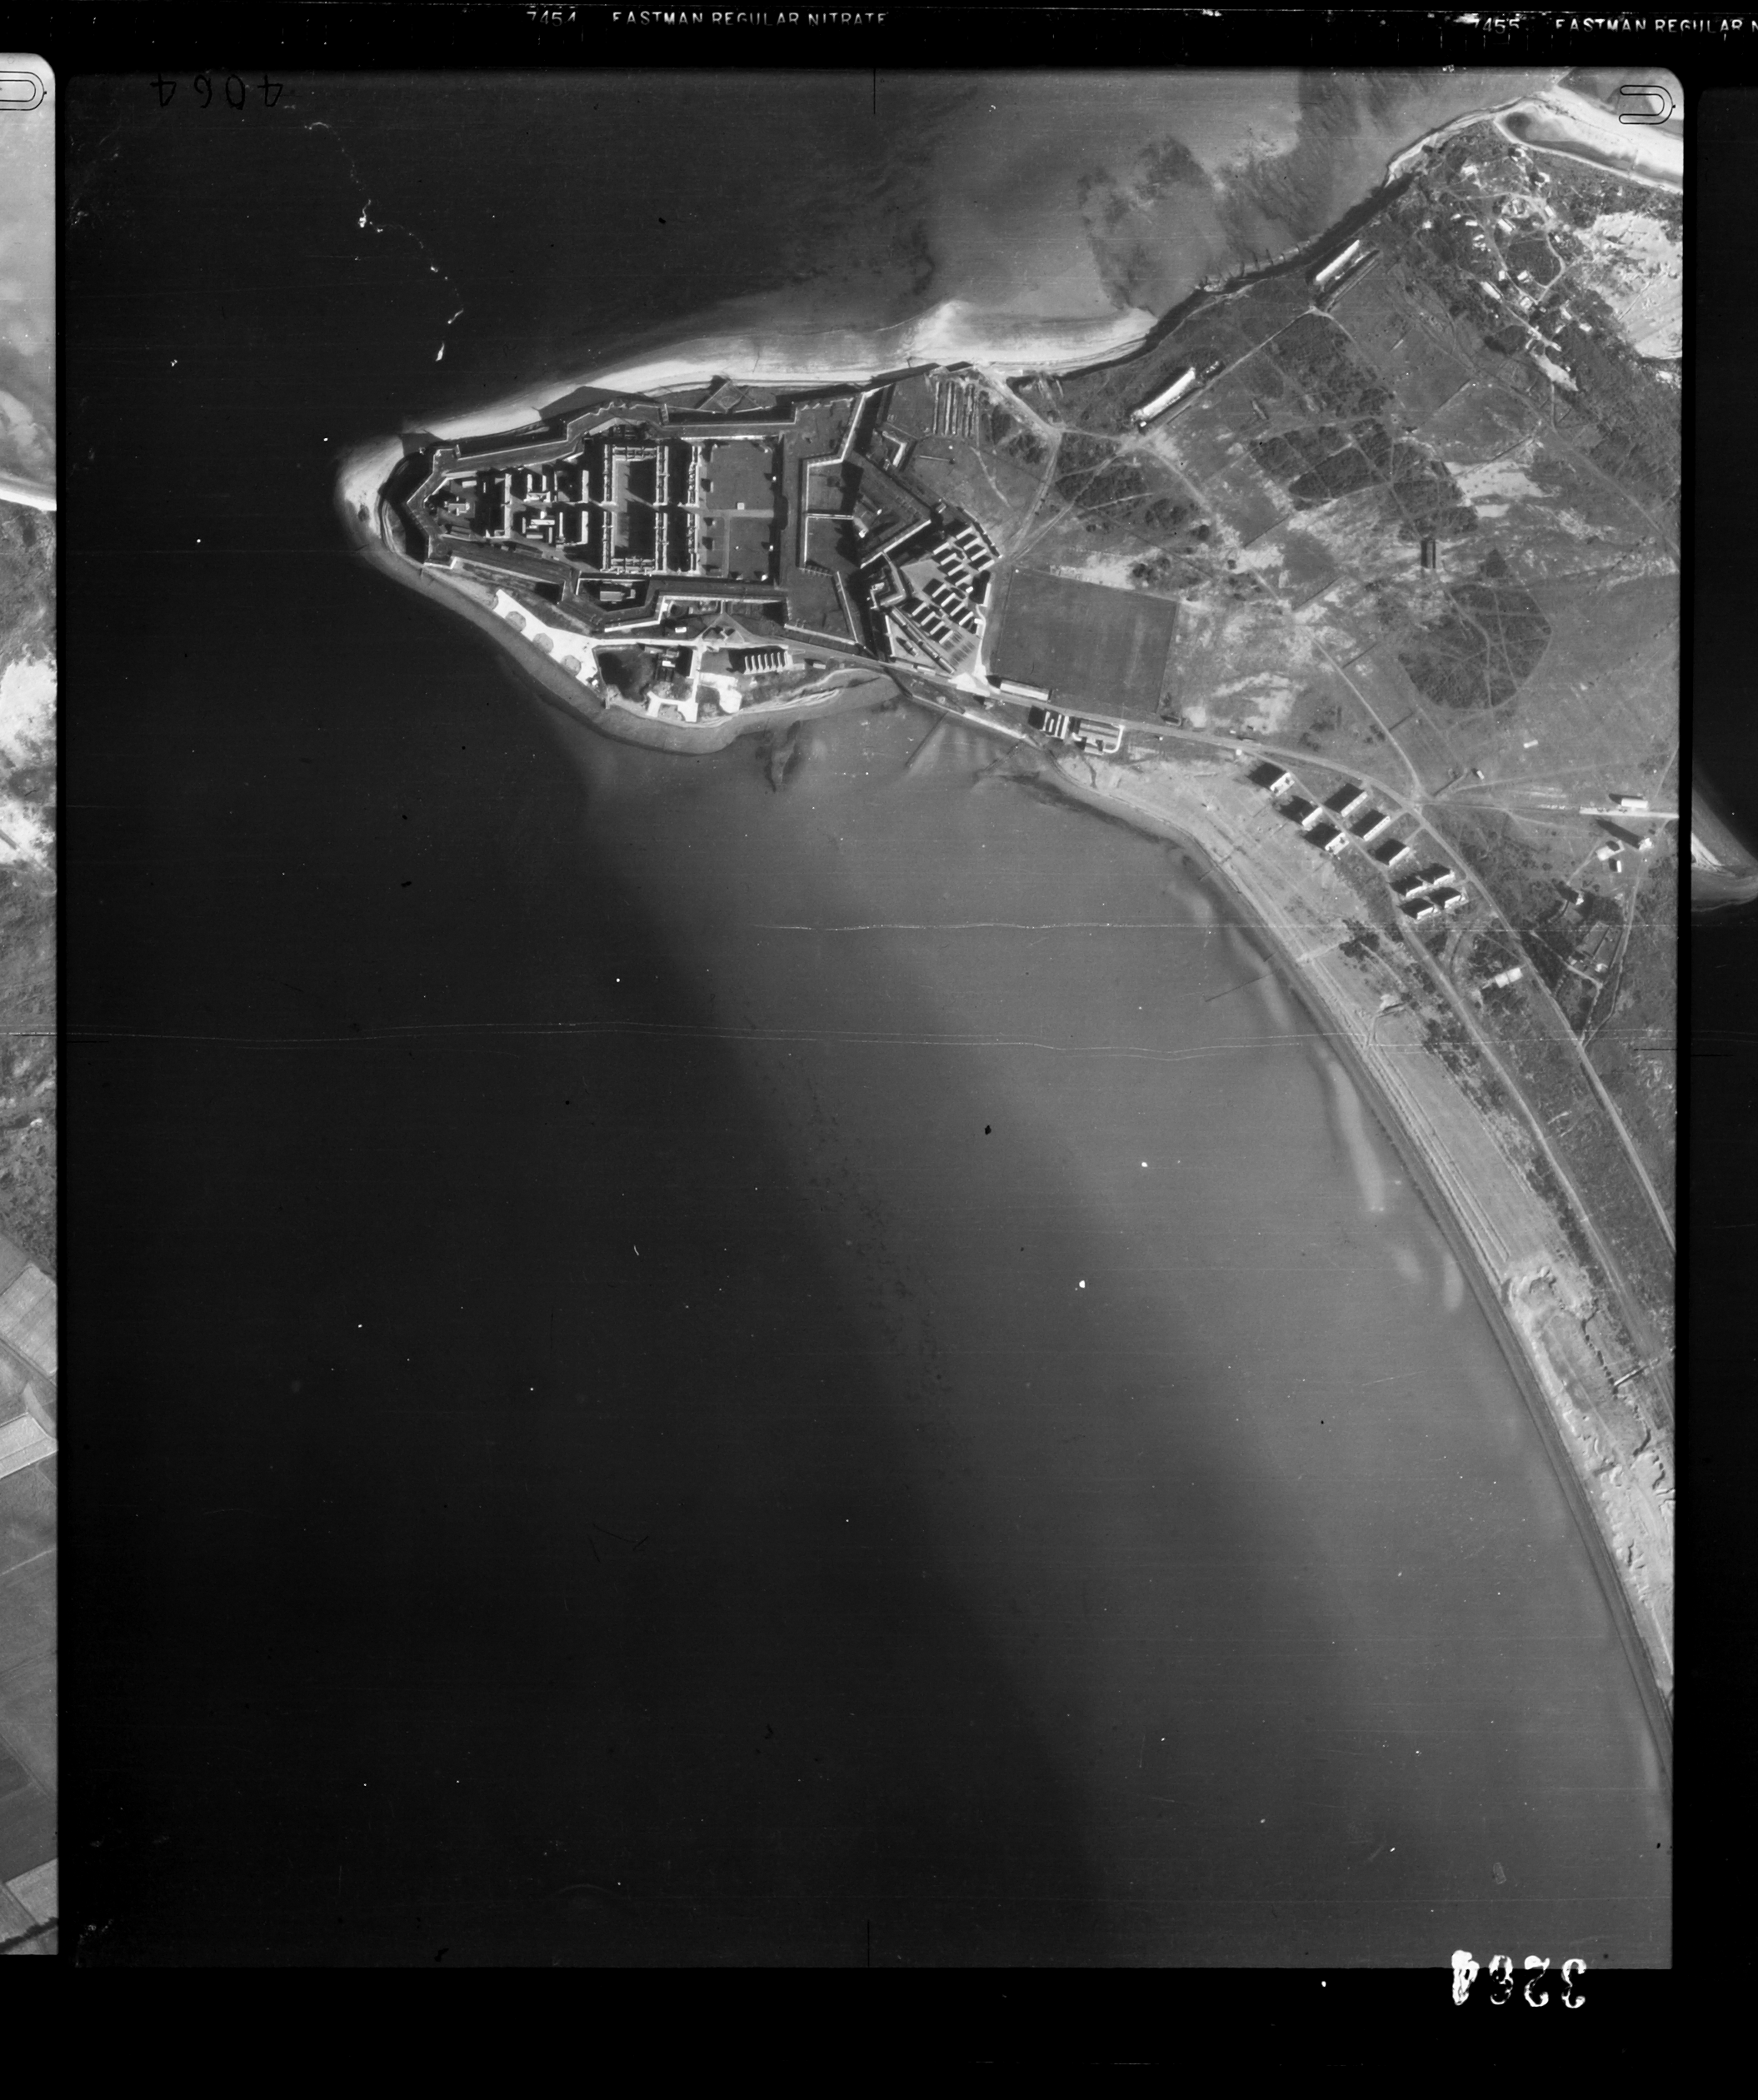 Aerial photograph of Fort George, taken in 1946. Fort George has been in continual use by the British Army since the 18th century and served as a base depot during the First and Second World Wars.